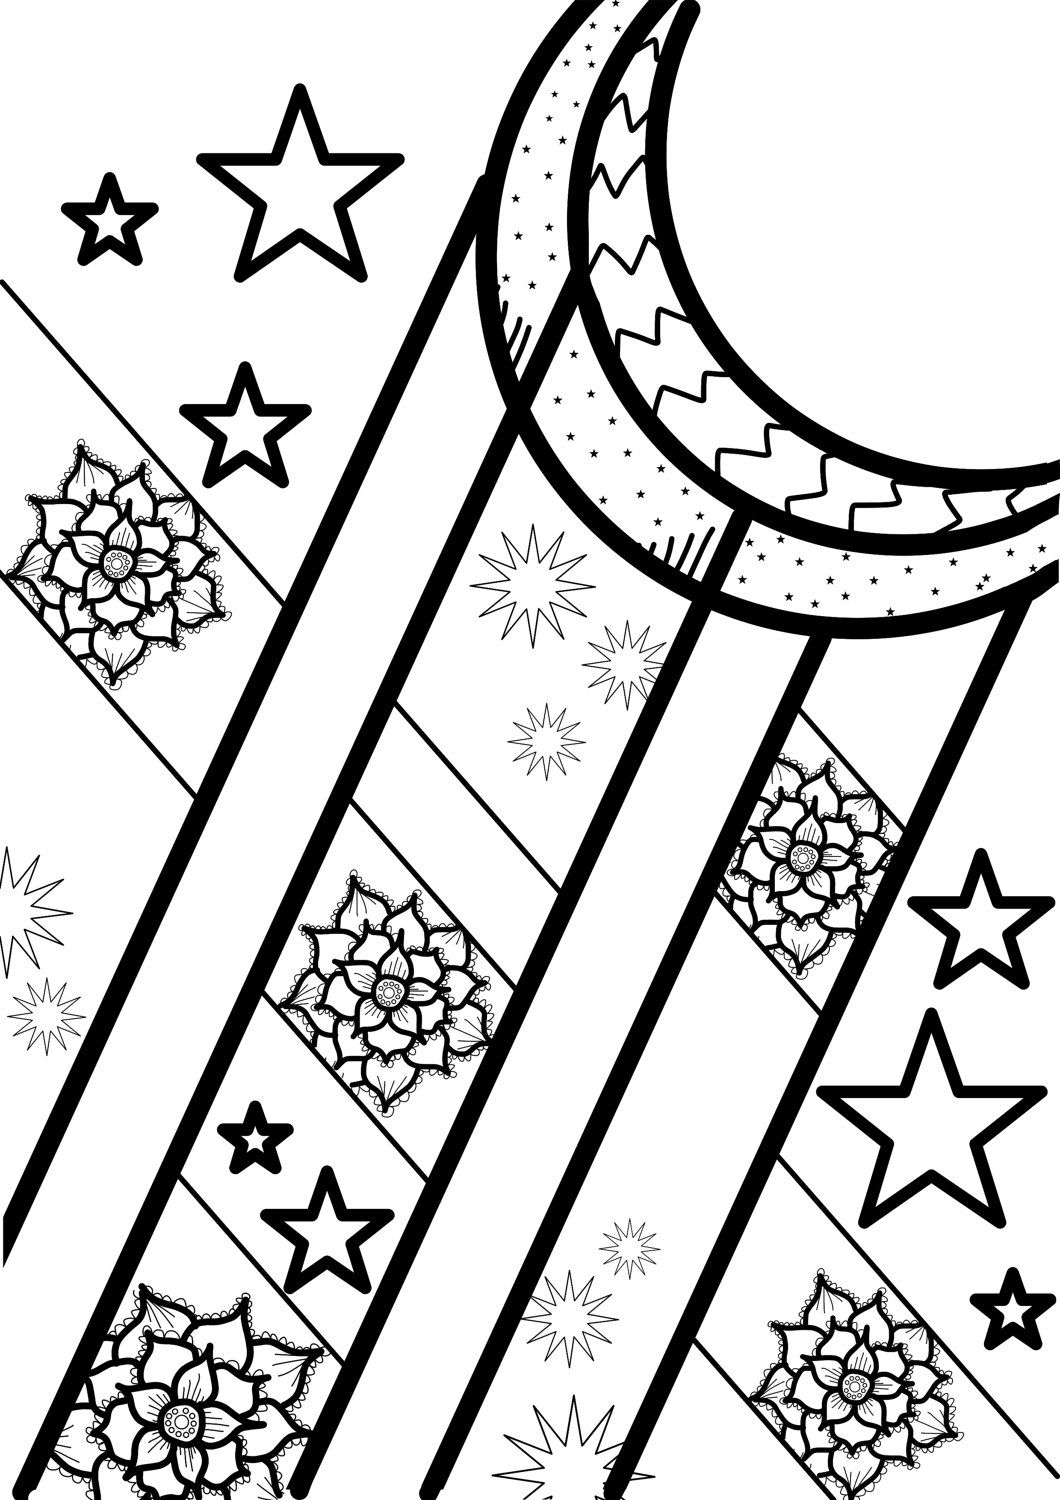 sci fi shapes a4 colouring pages by copperandtwineco on etsy - A4 Colouring Pages